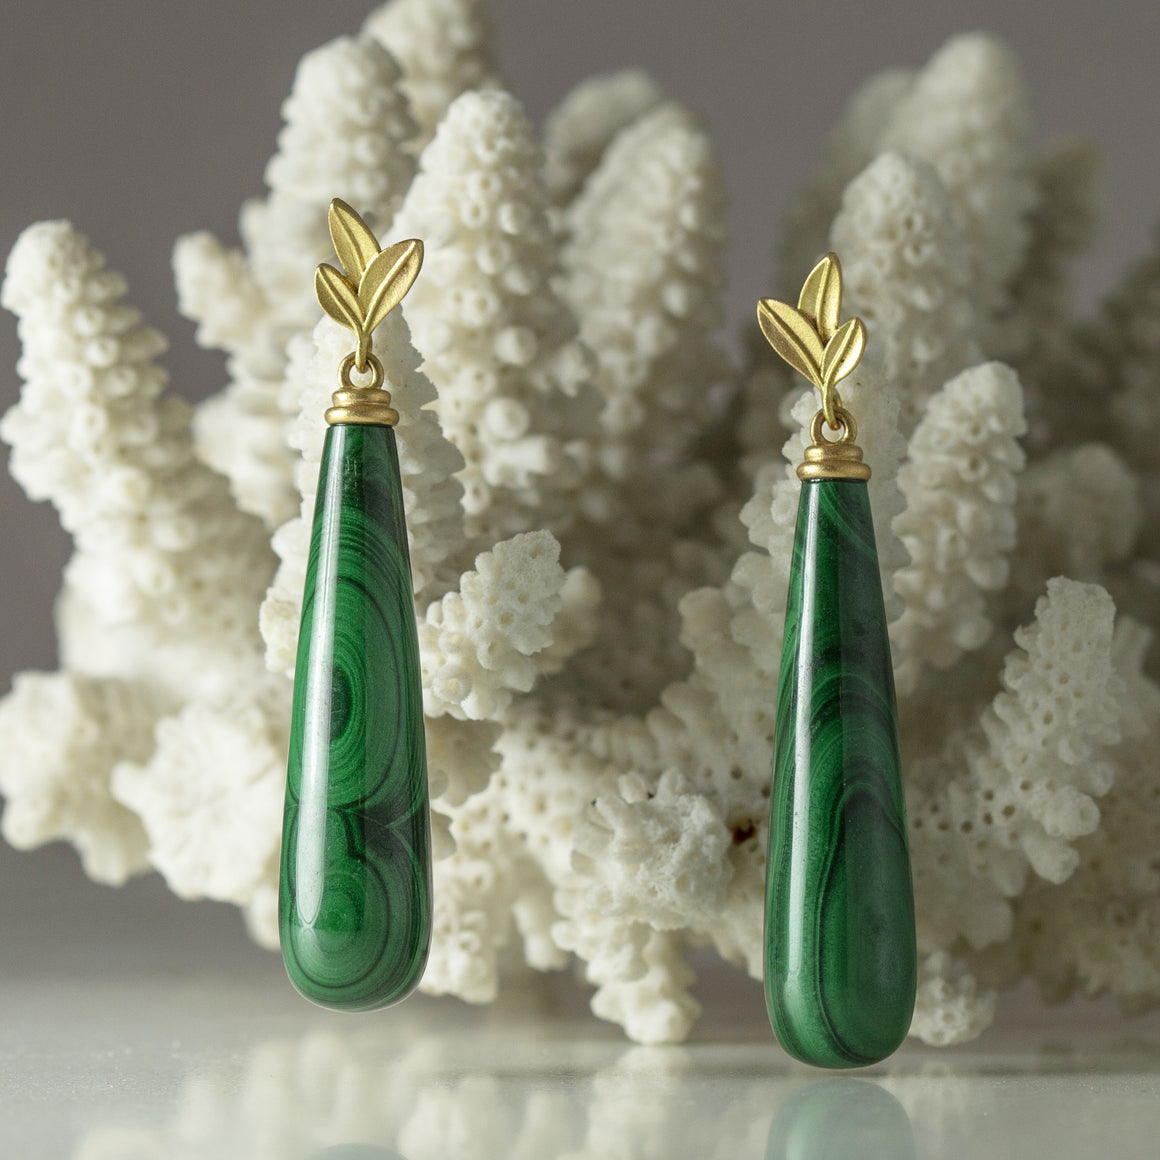 Botanica Malachite Drop Earrings in Yellow Gold